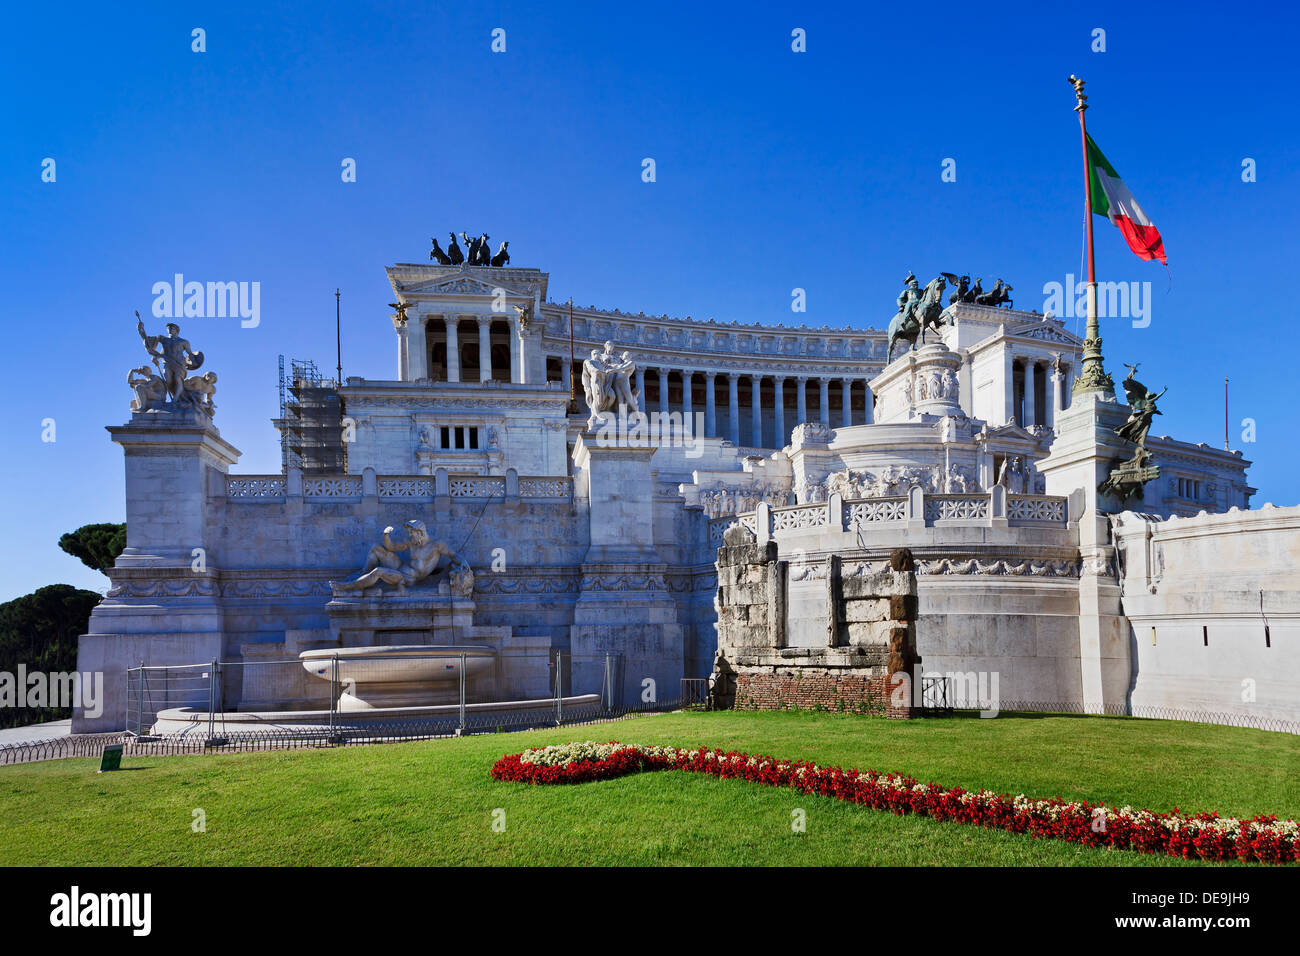 Italy Rome capital of italian nation altar of fatherland landmark monument day time blue sky marble palace with colonnade and st - Stock Image